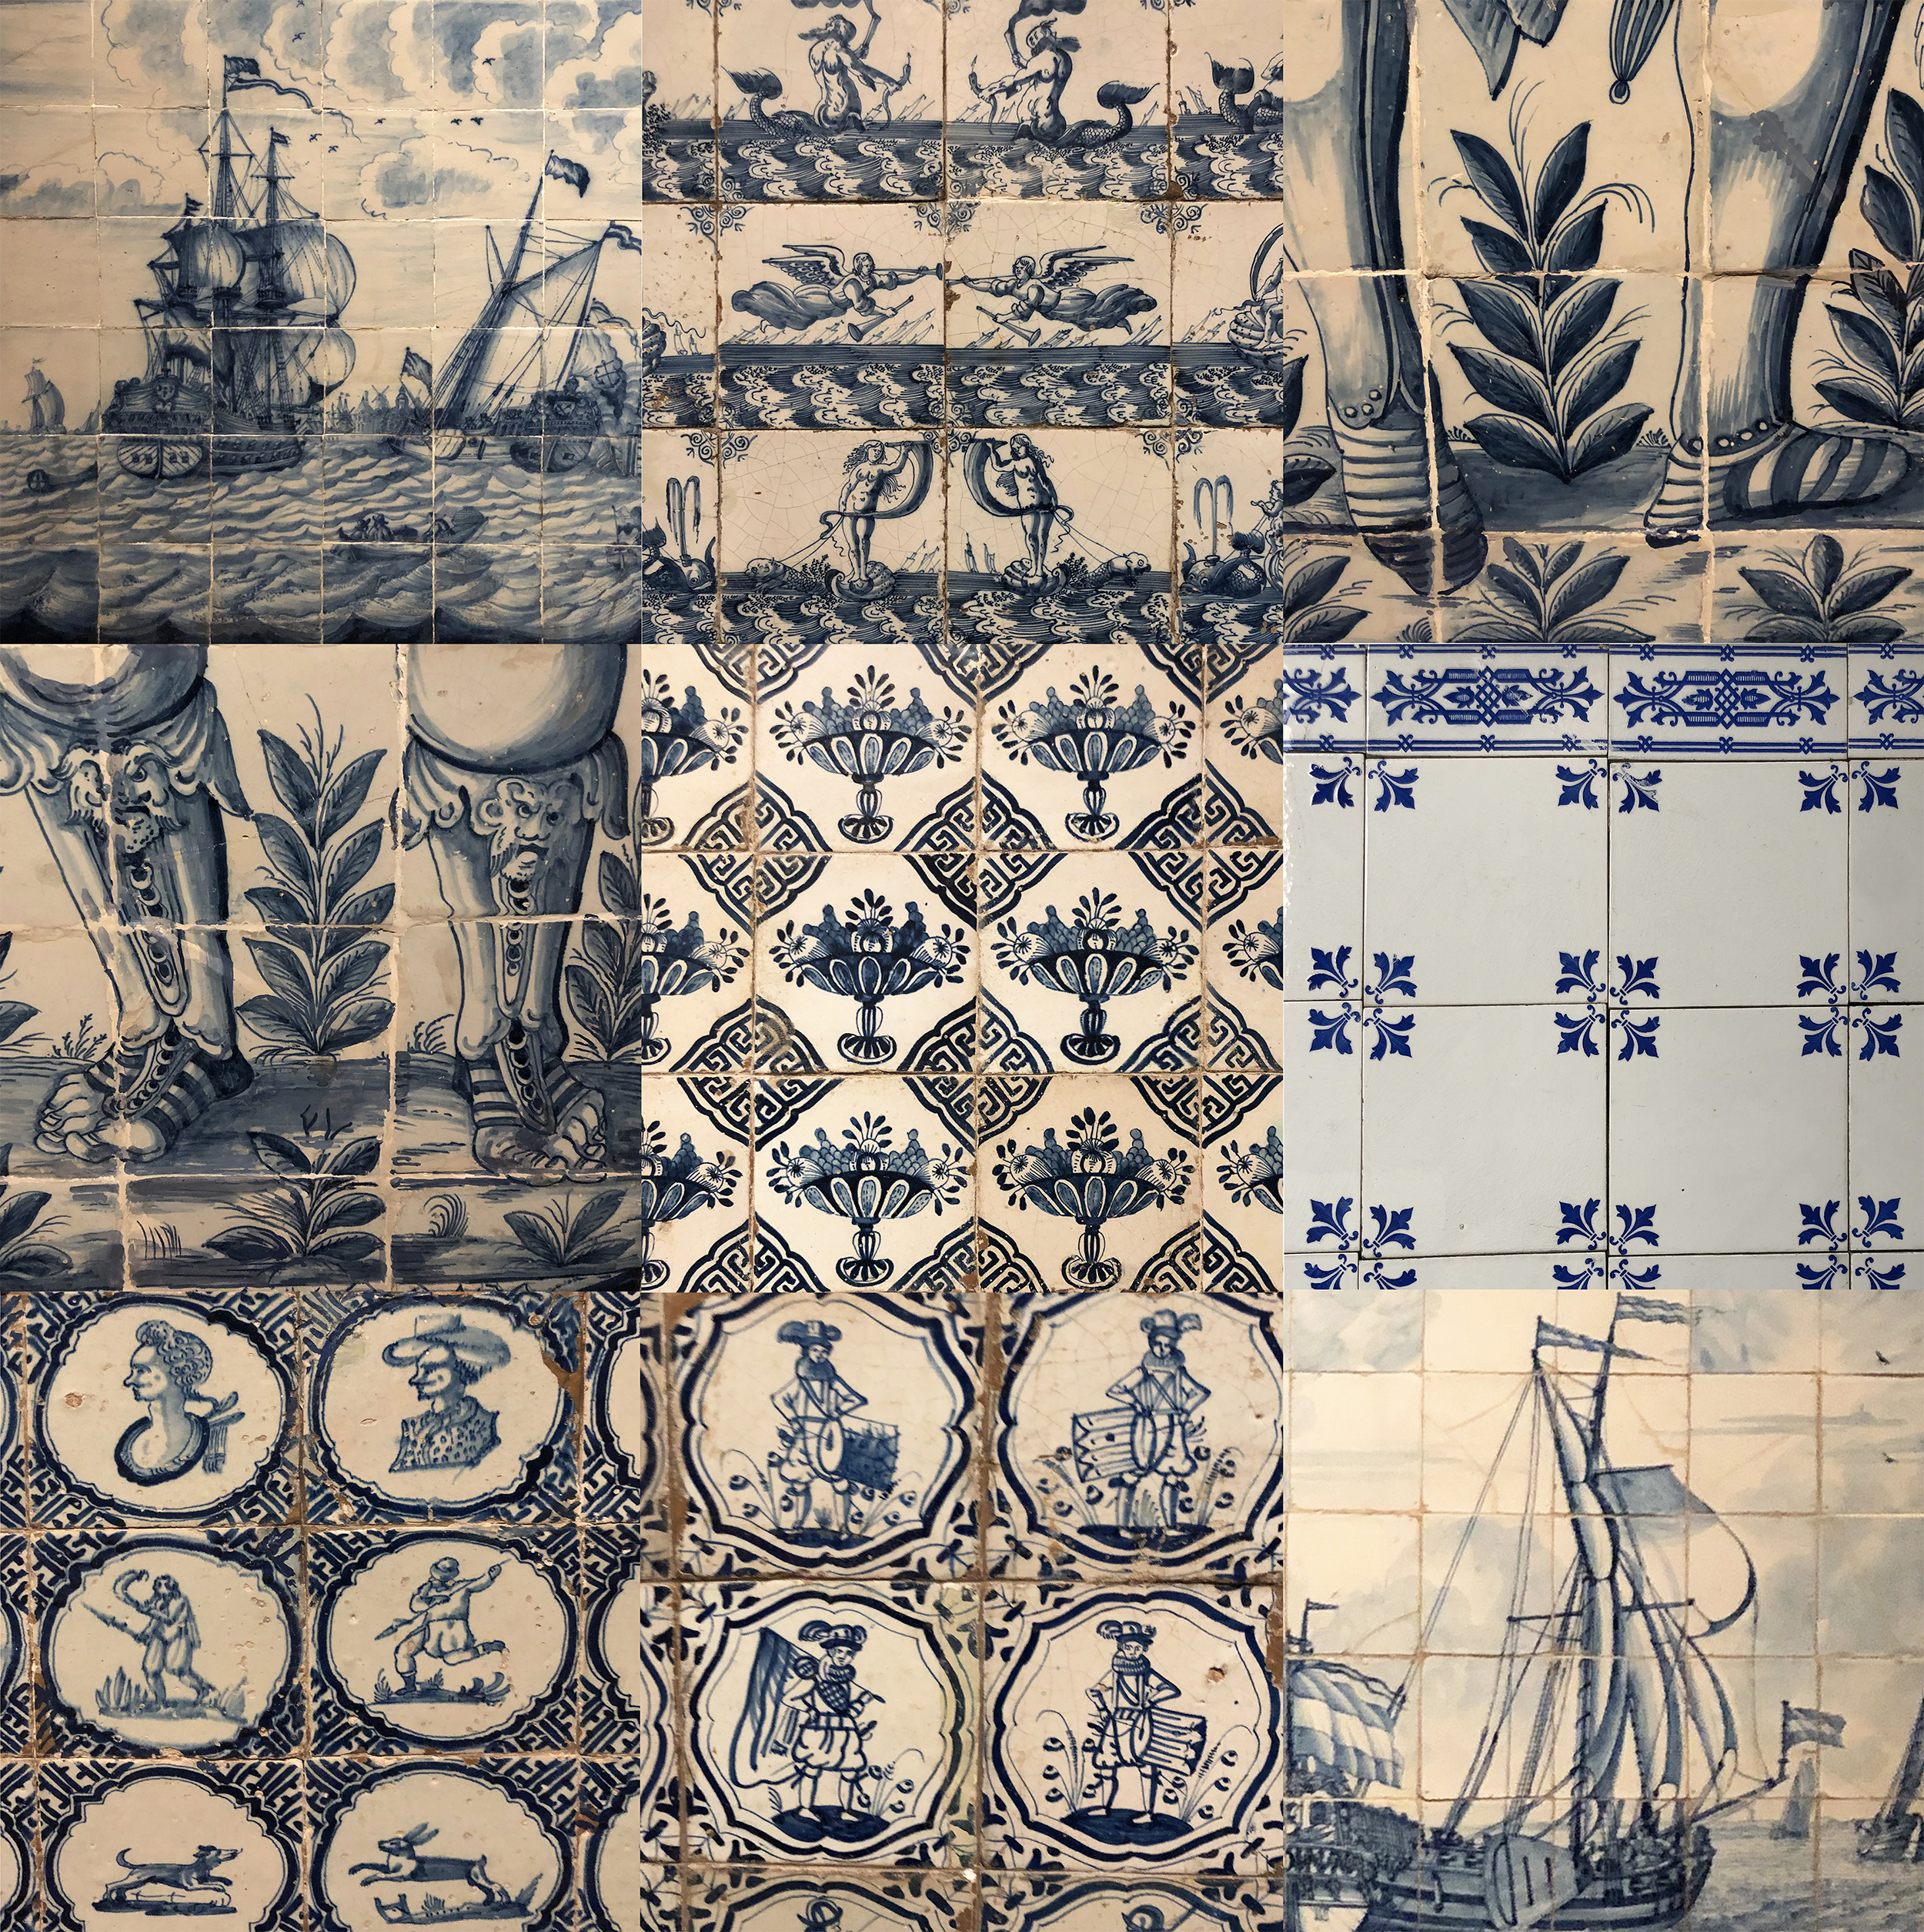 Examples of Delftware found in the neighborhoods of Amsterdam & the Rijksmuseum's collection